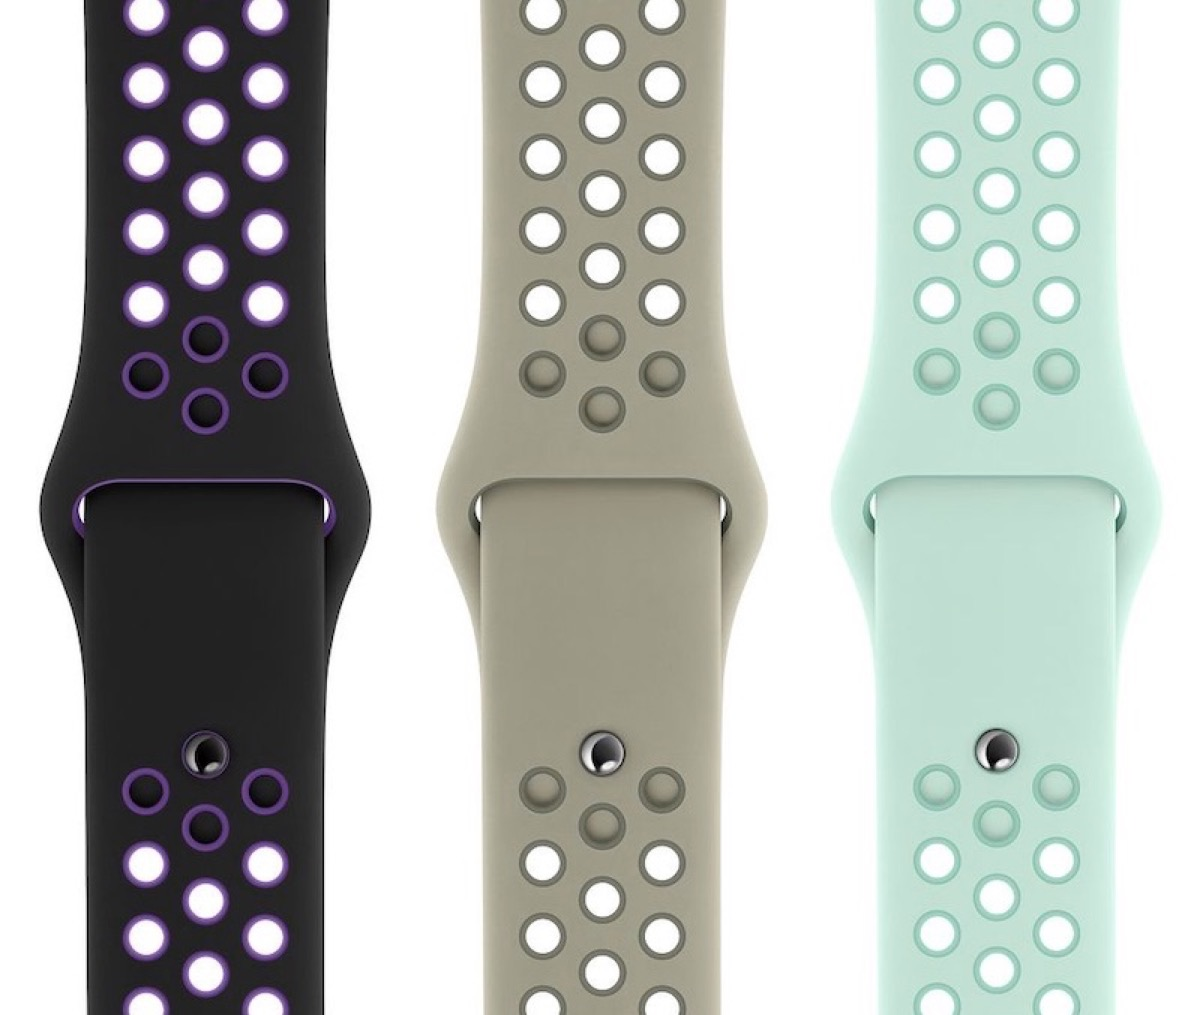 Su Apple Store è primavera: nuove cover per iPhone e cinturini per Apple Watch